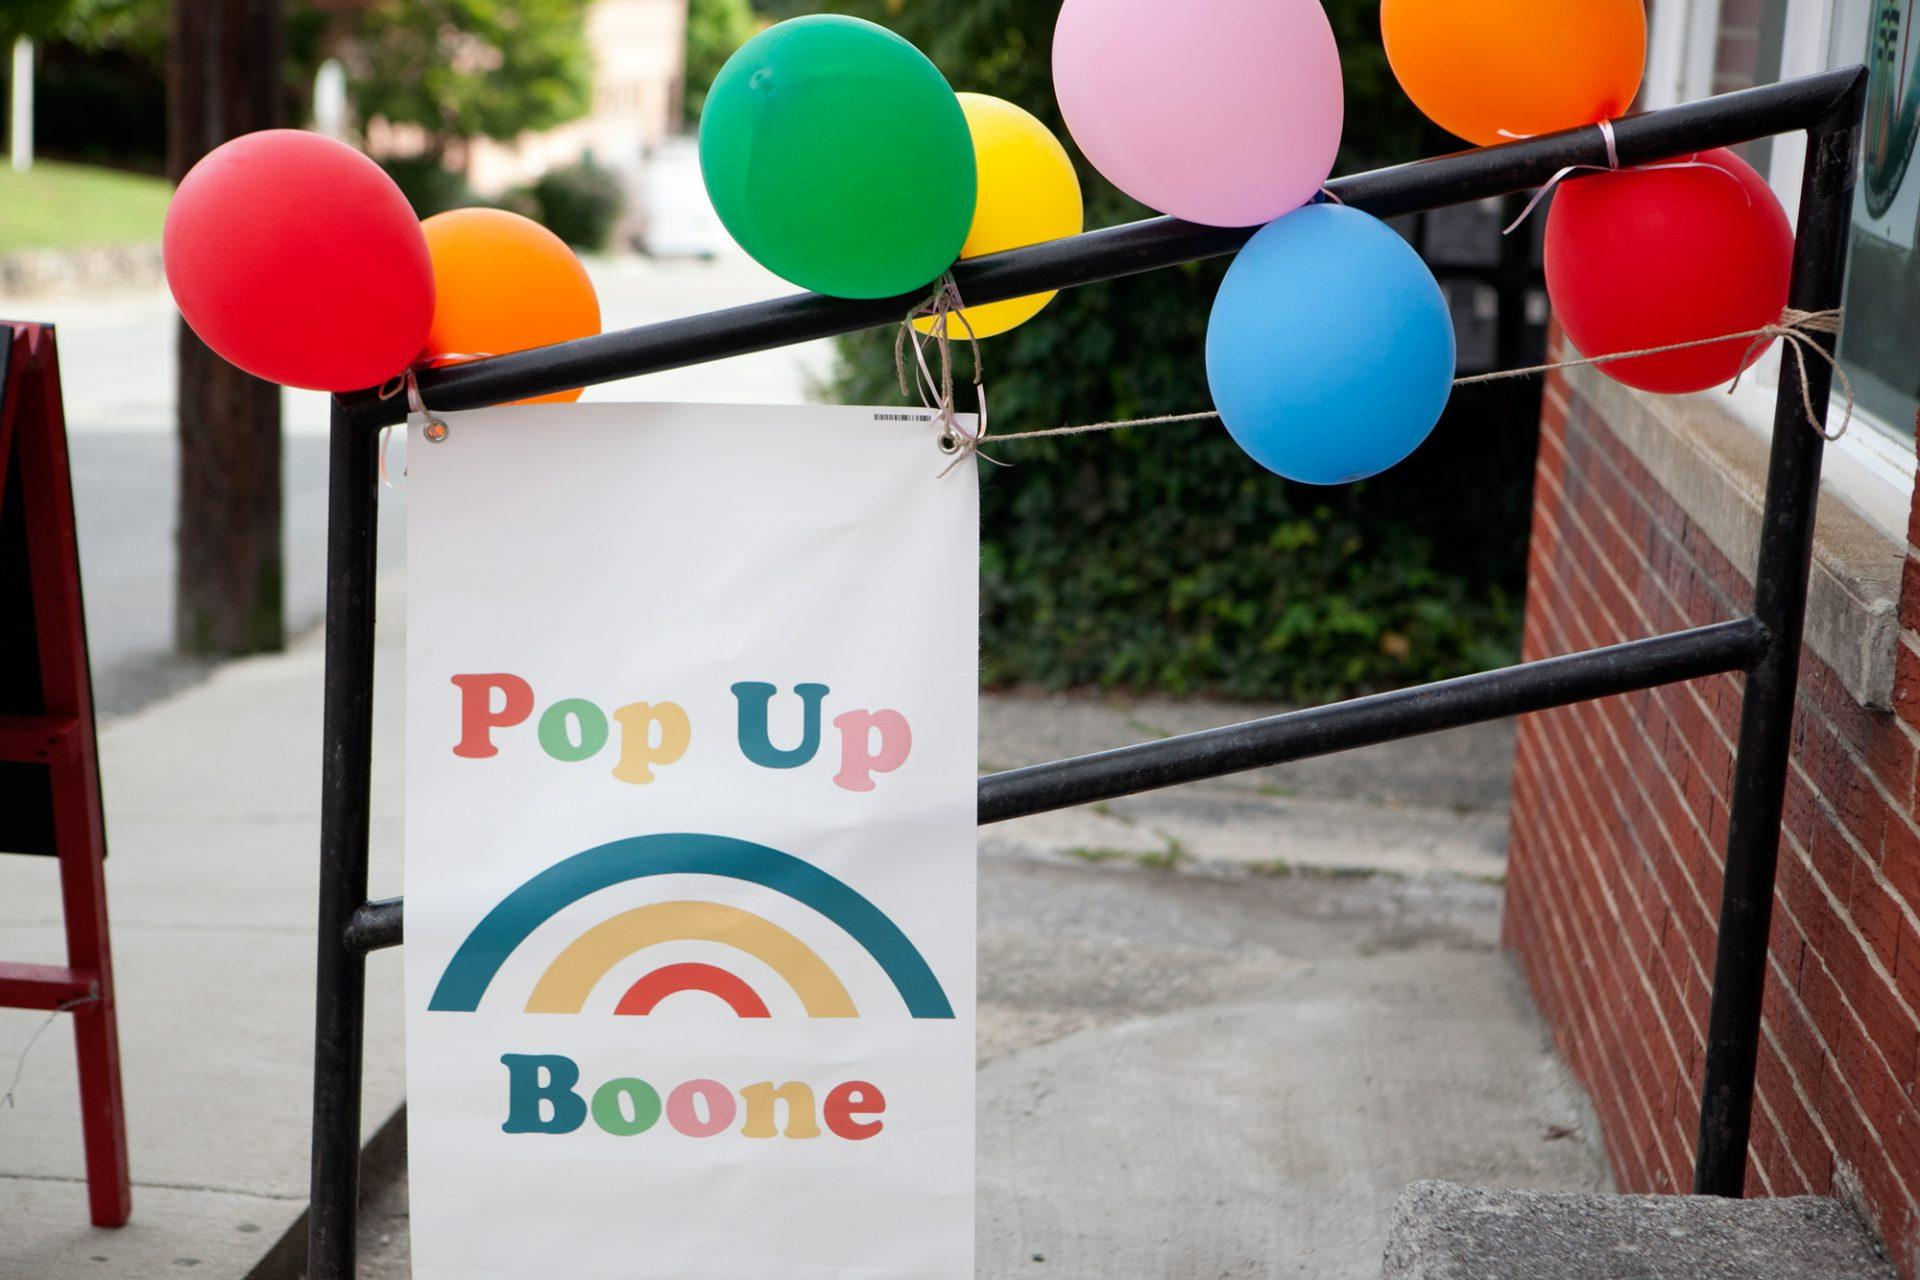 Pop Up Boone holds third artisan market